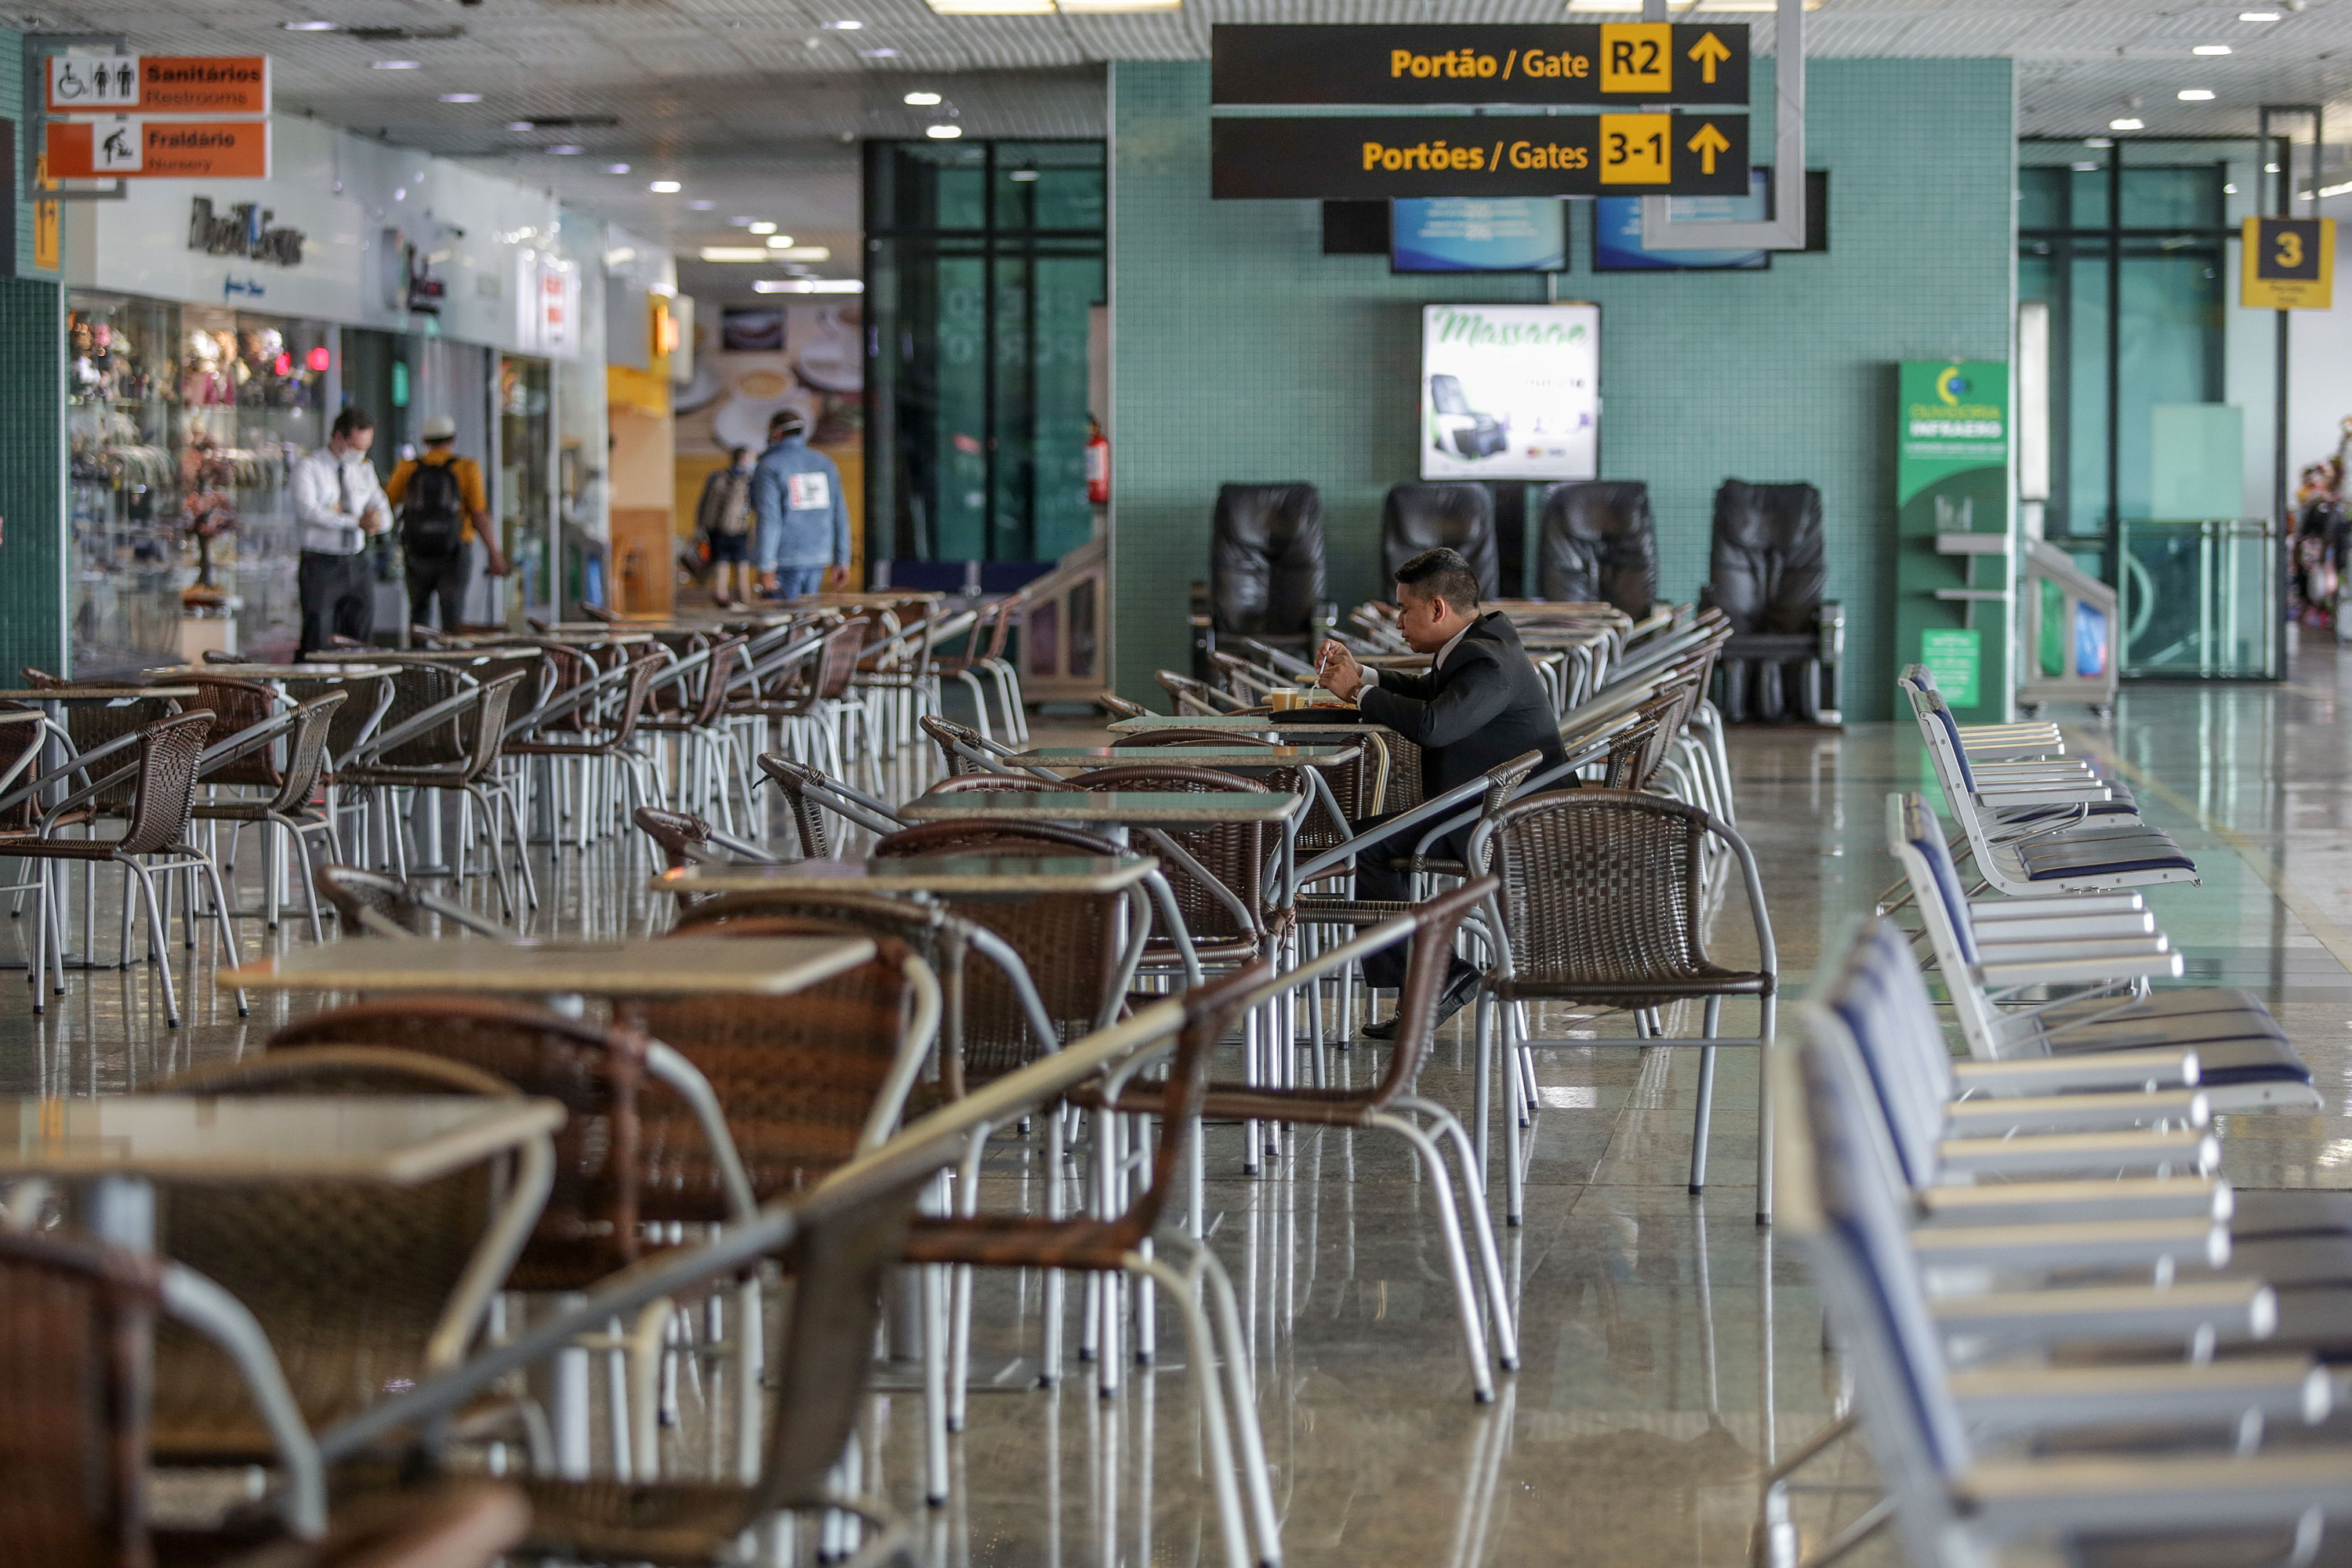 A man sits alone at the food court ofthe Manaus AM Eduardo Gomes International Airport in Manaus, Brazil, on May 18.